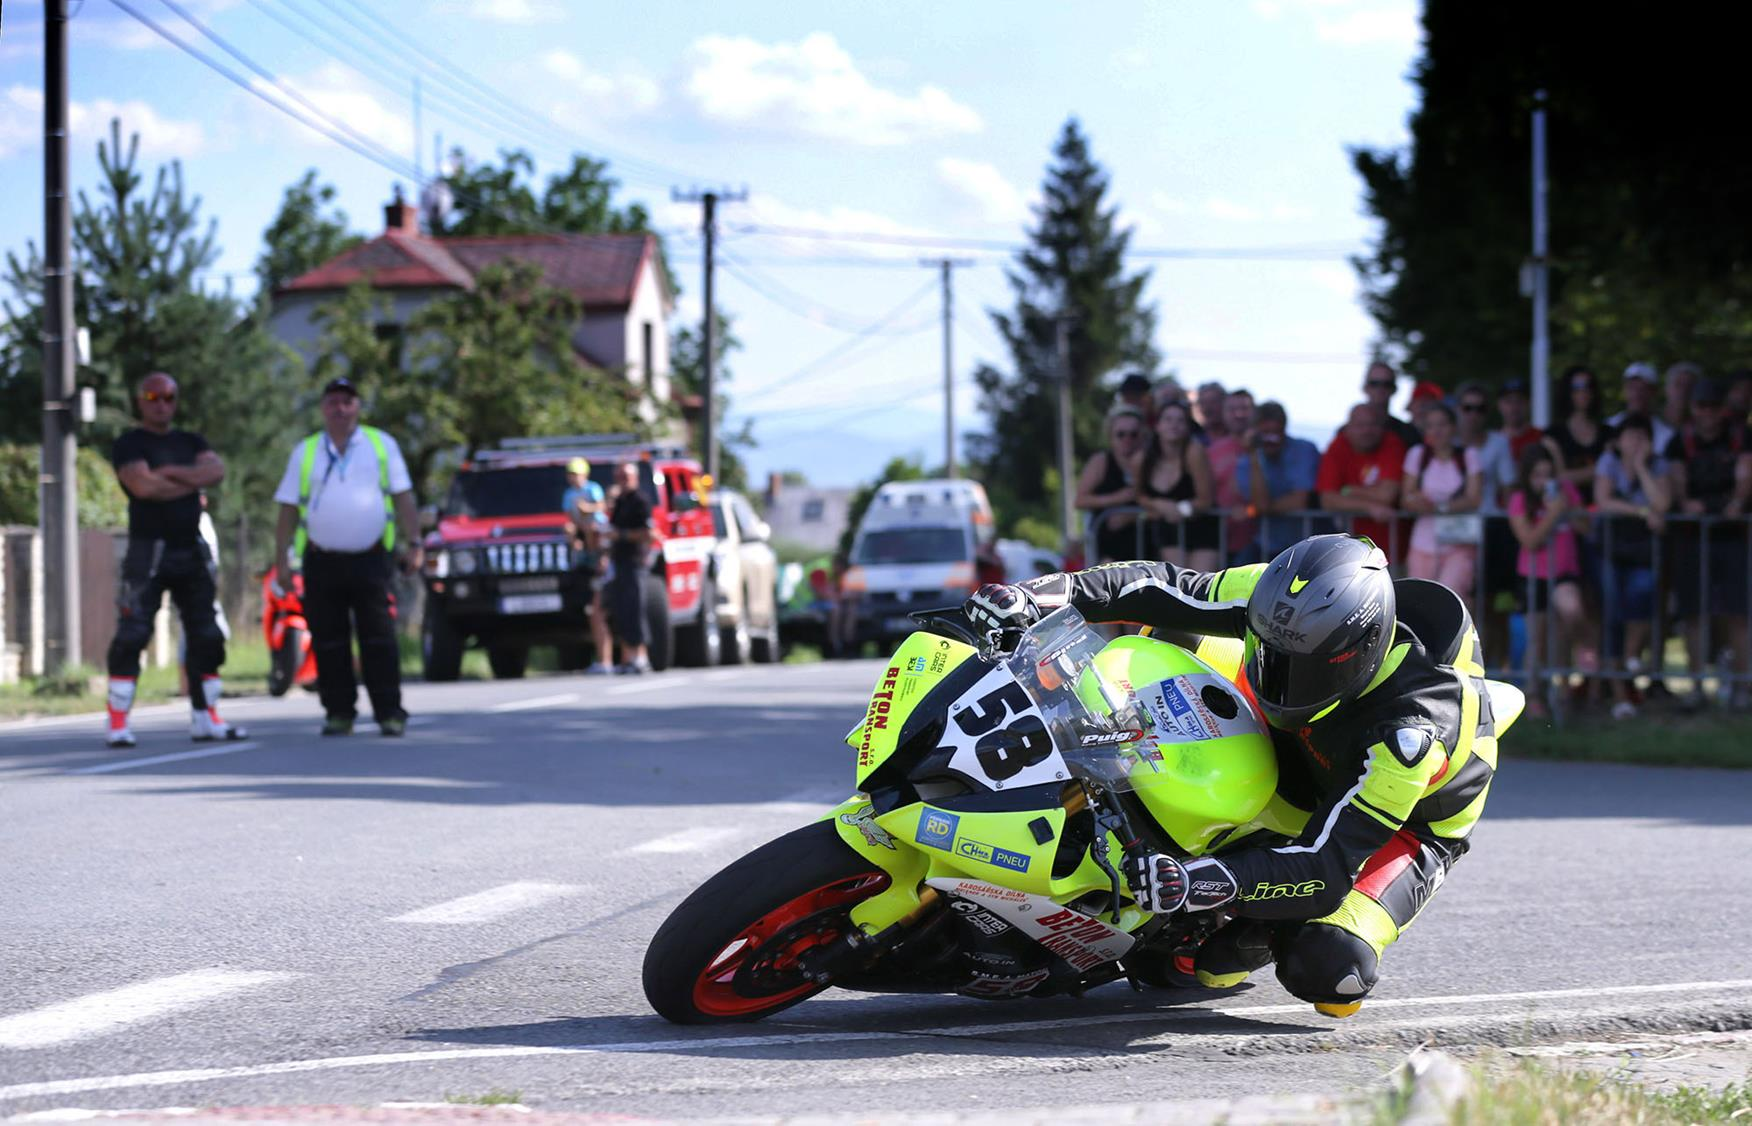 Kerbs and street furniture keep road racing exciting, but also dangerous